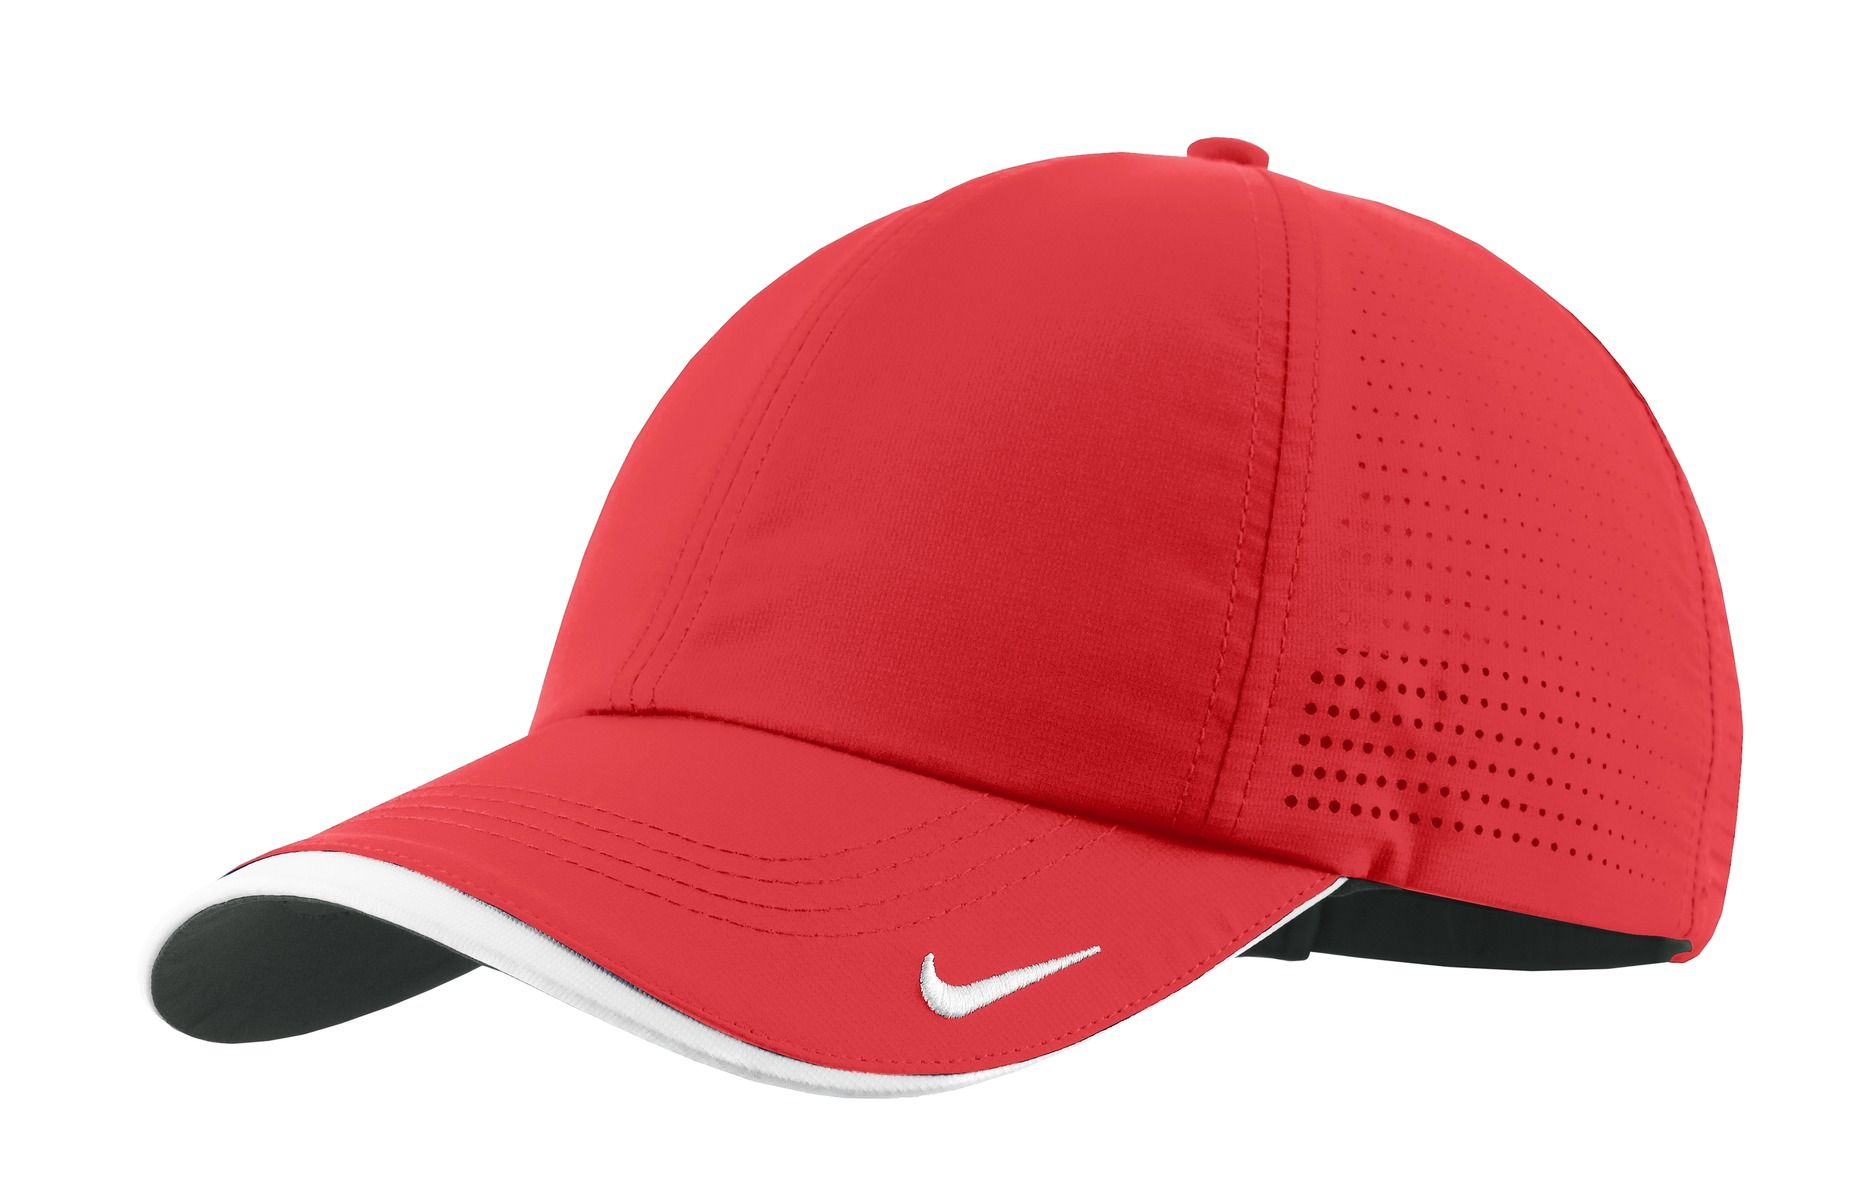 77a8c508dbb 429467 Nike Golf - Dri-FIT Swoosh Perforated Cap